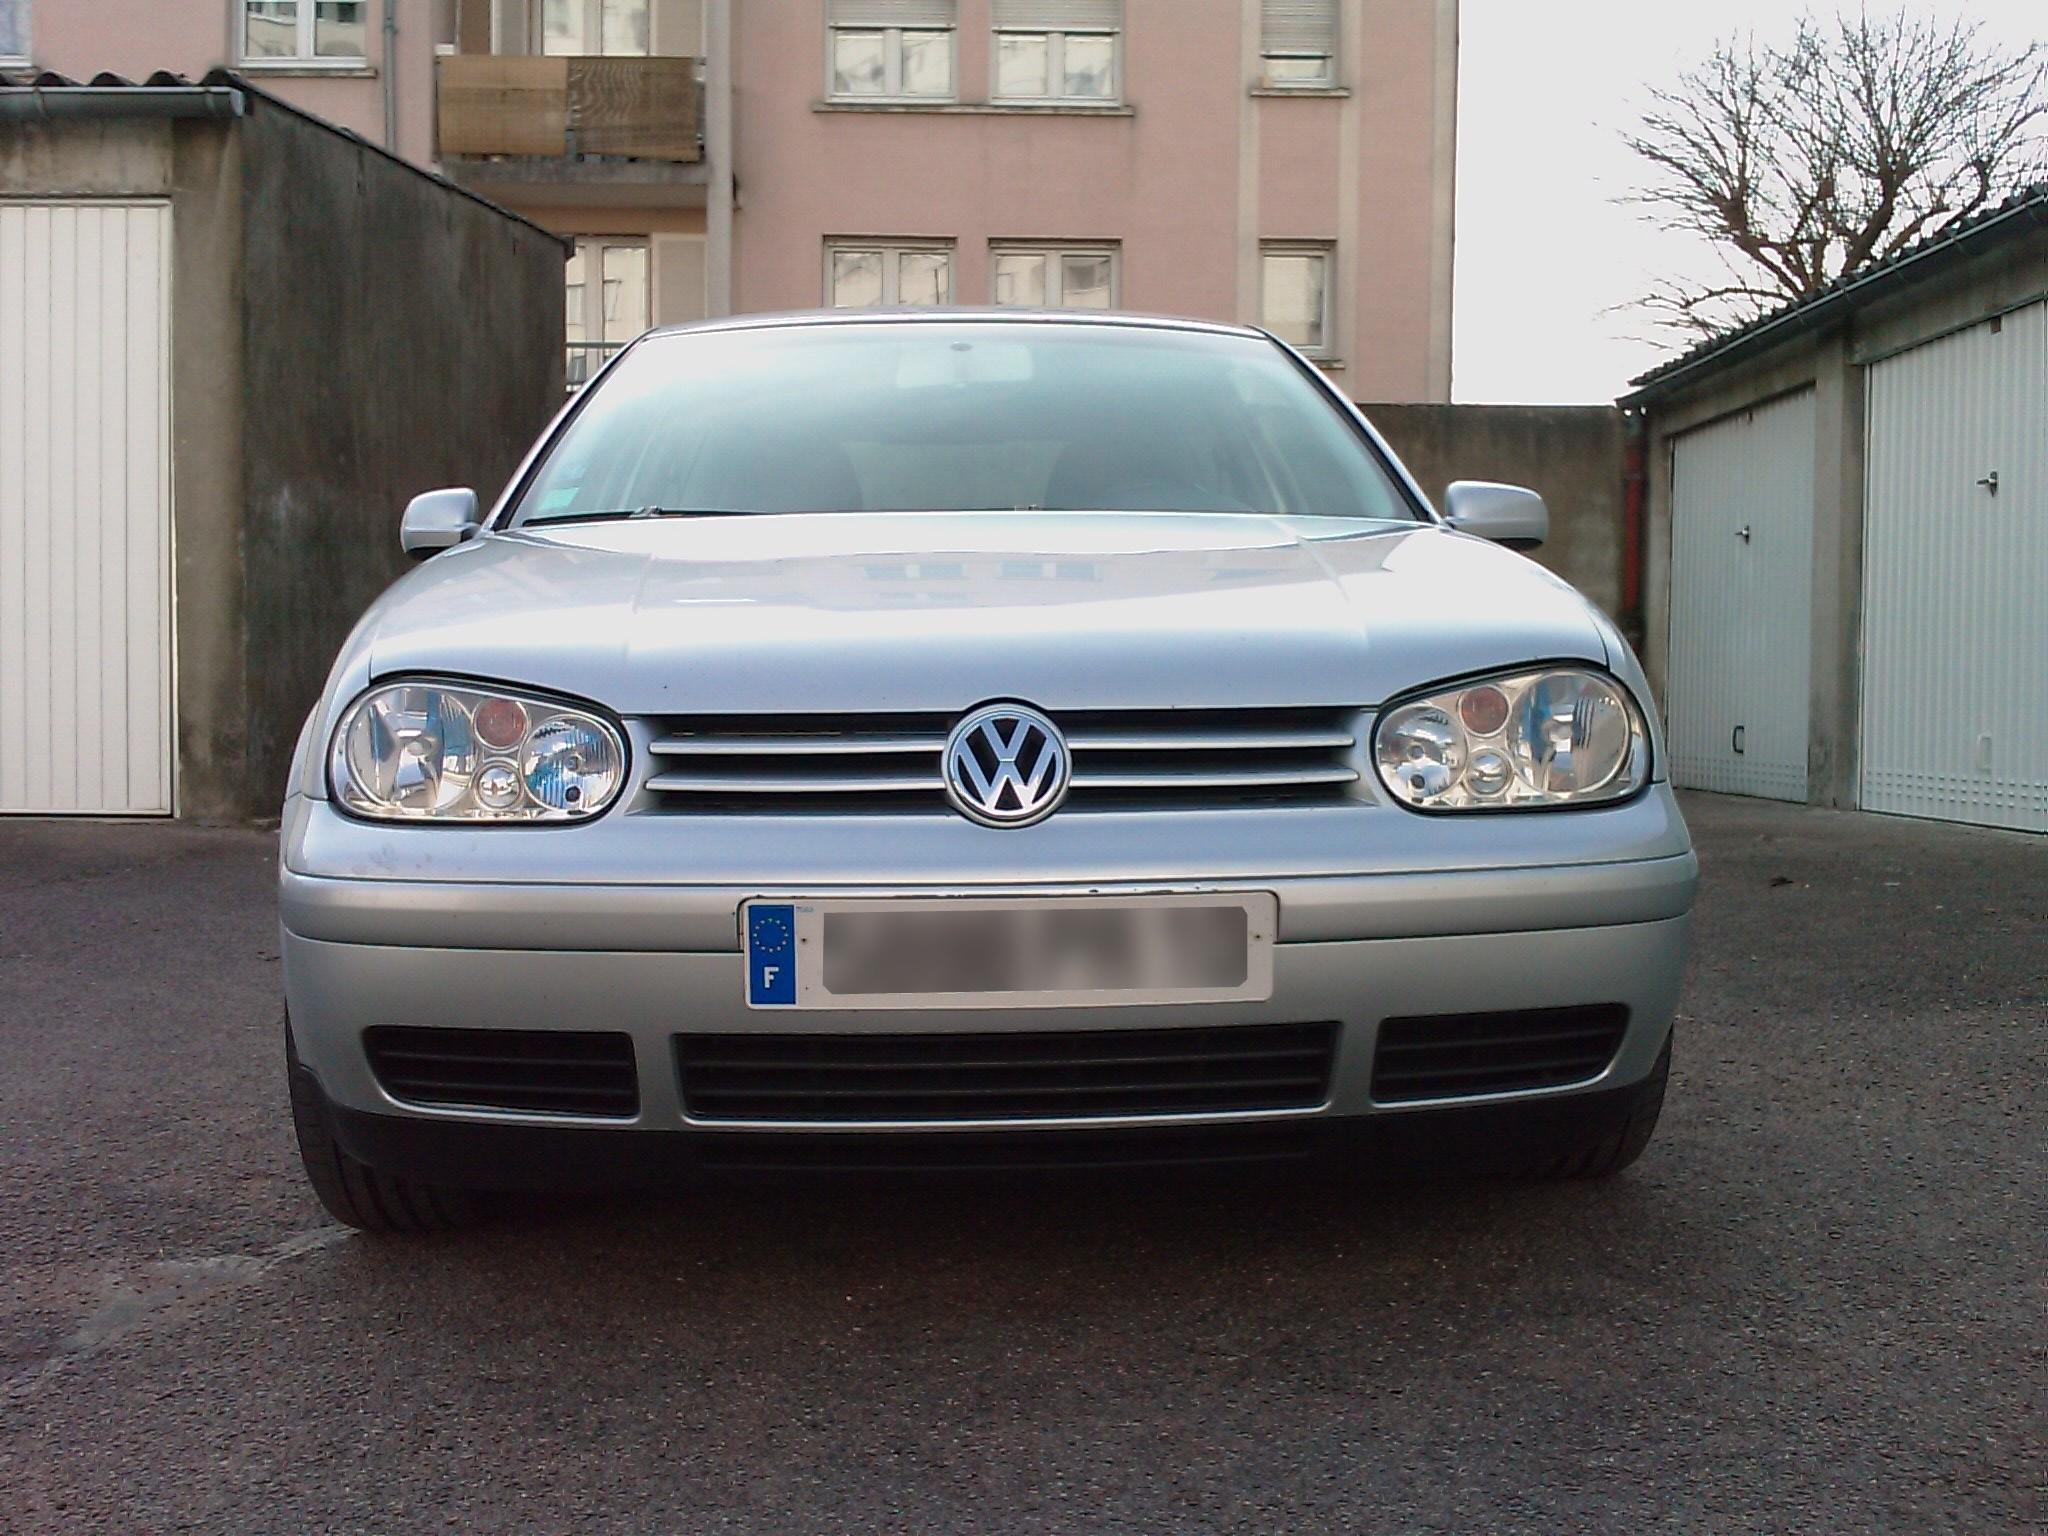 golf iv tdi 130 match ii 3 portes   garage des golf iv tdi